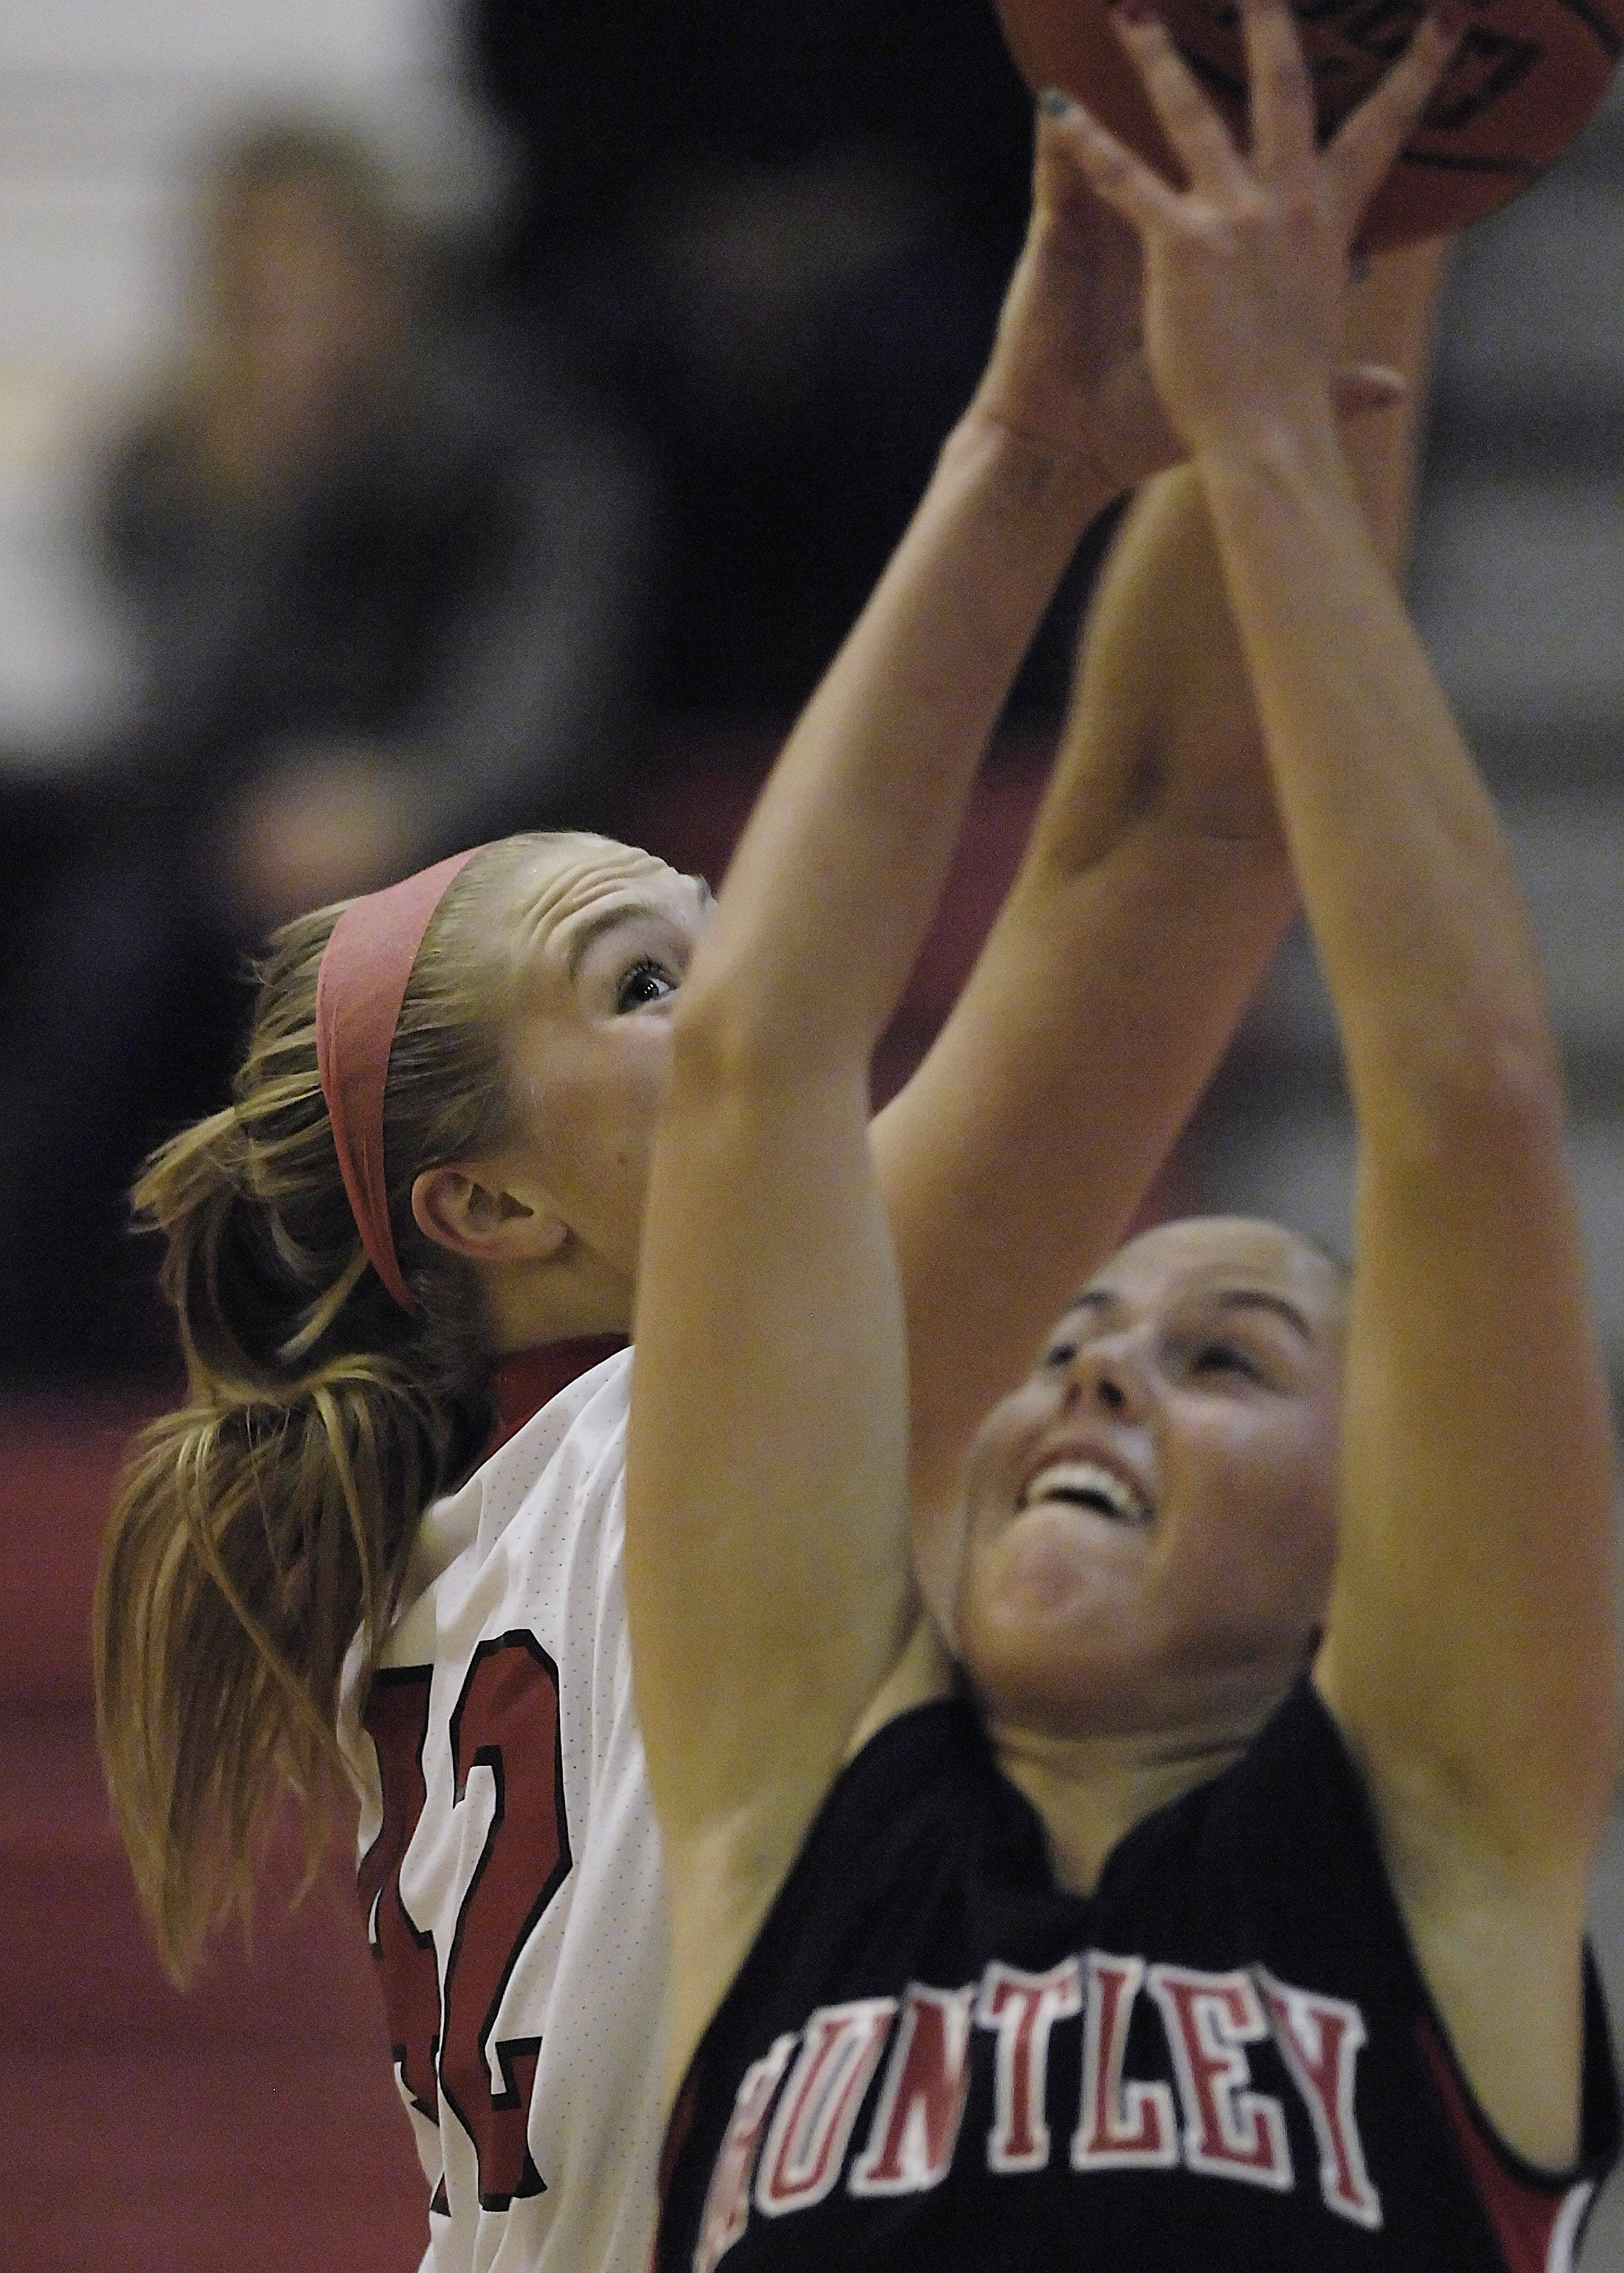 Barrington's Shelby Whigham keeps her eye on the ball as she stretches for a rebound against Huntley's Rachel Chapuis.